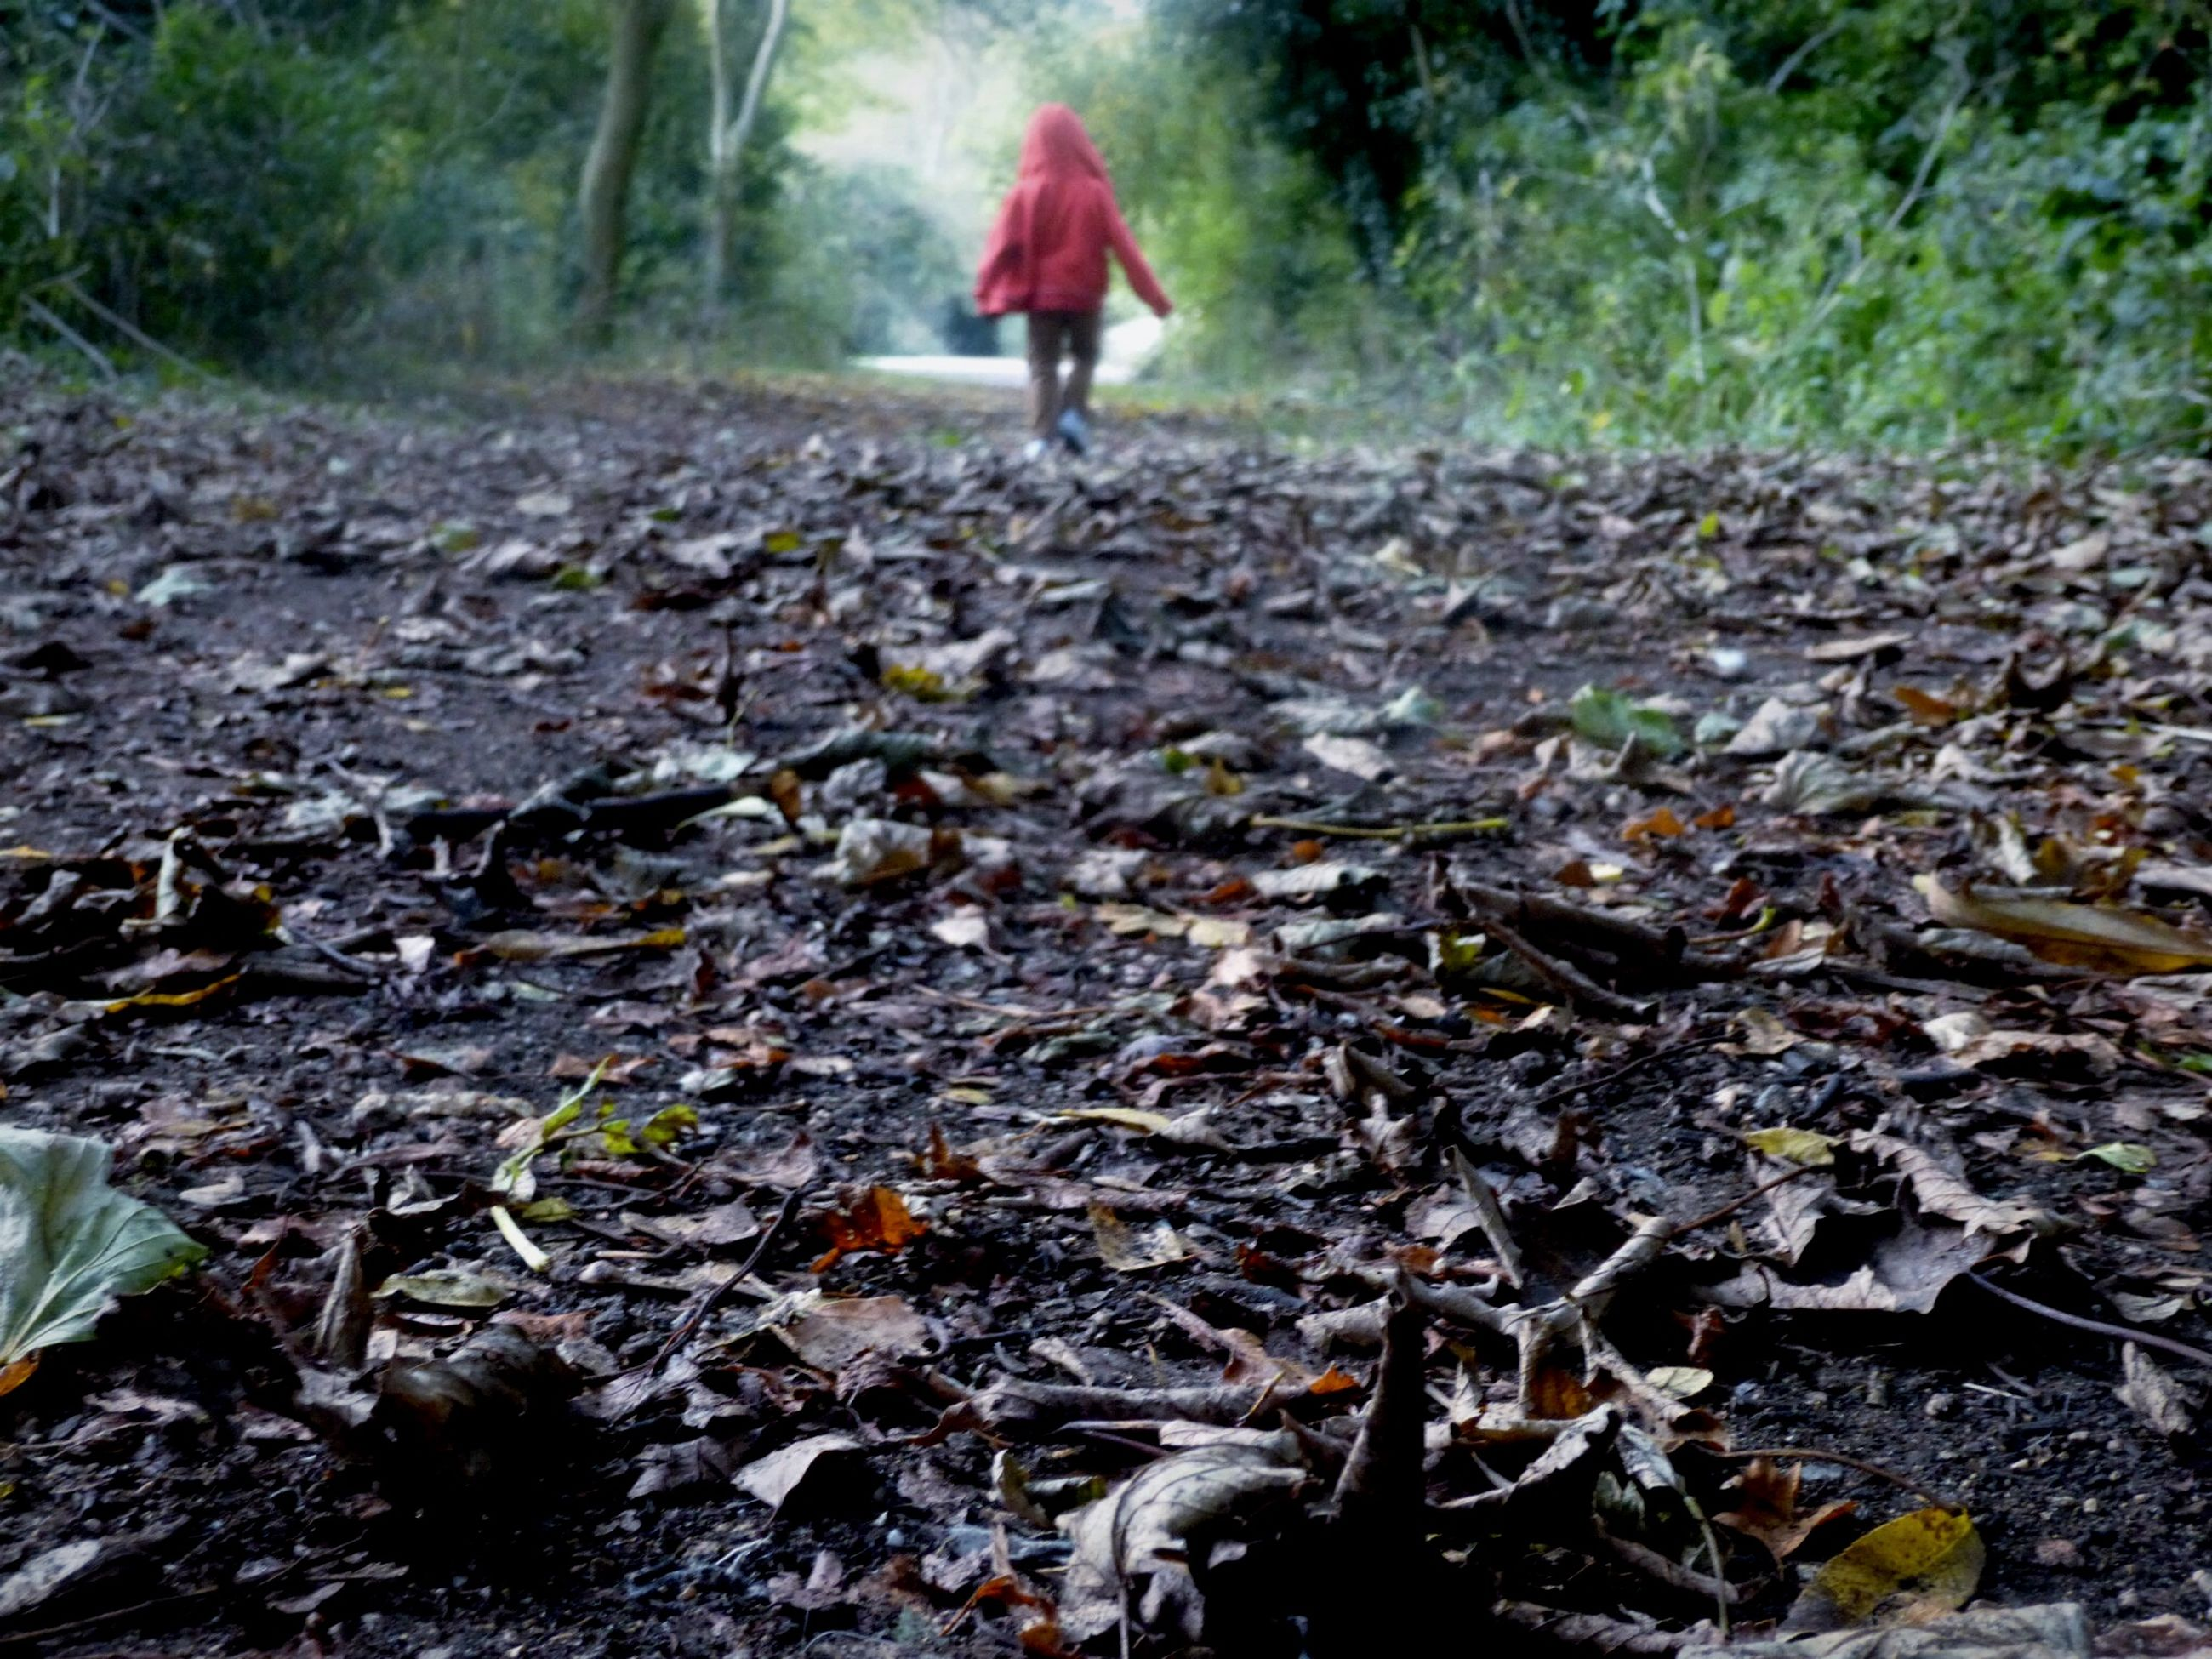 autumn, leaf, lifestyles, tree, change, forest, fallen, leisure activity, nature, day, standing, walking, outdoors, falling, dry, season, leaves, field